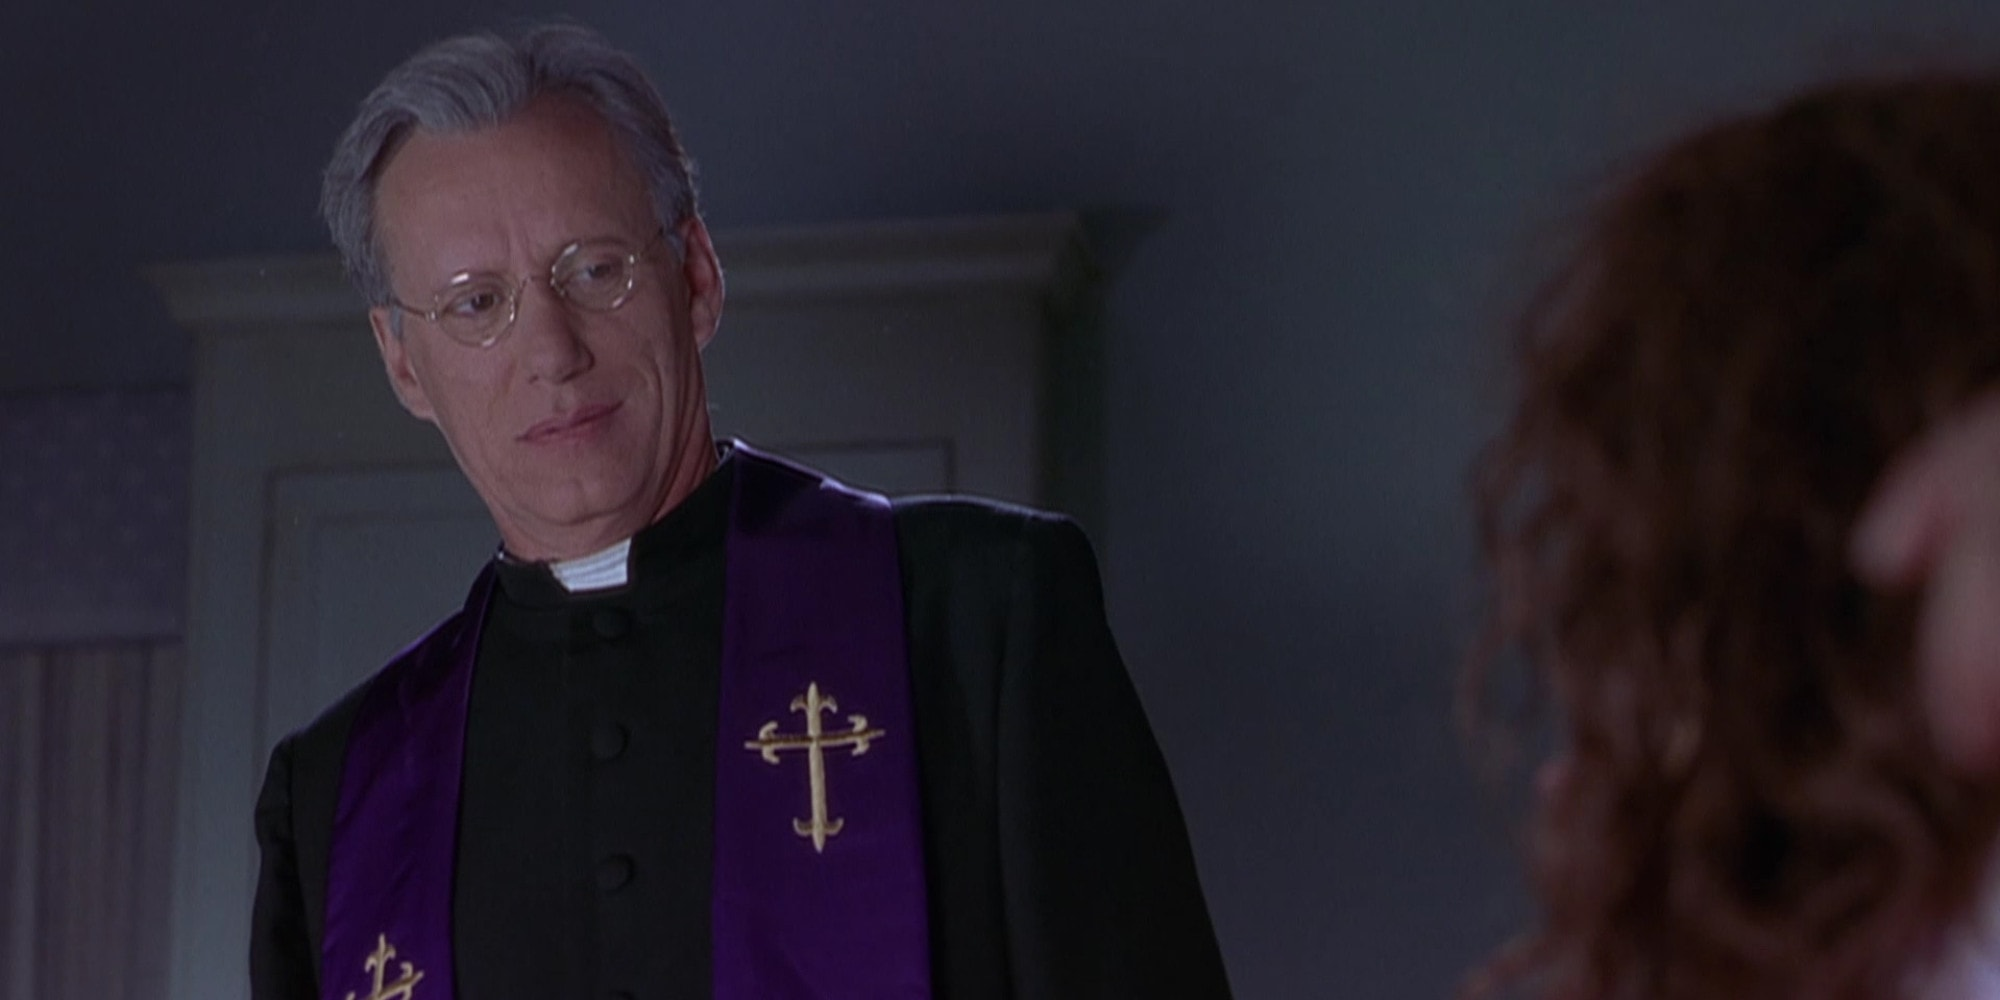 James Woods Widescreen for desktop